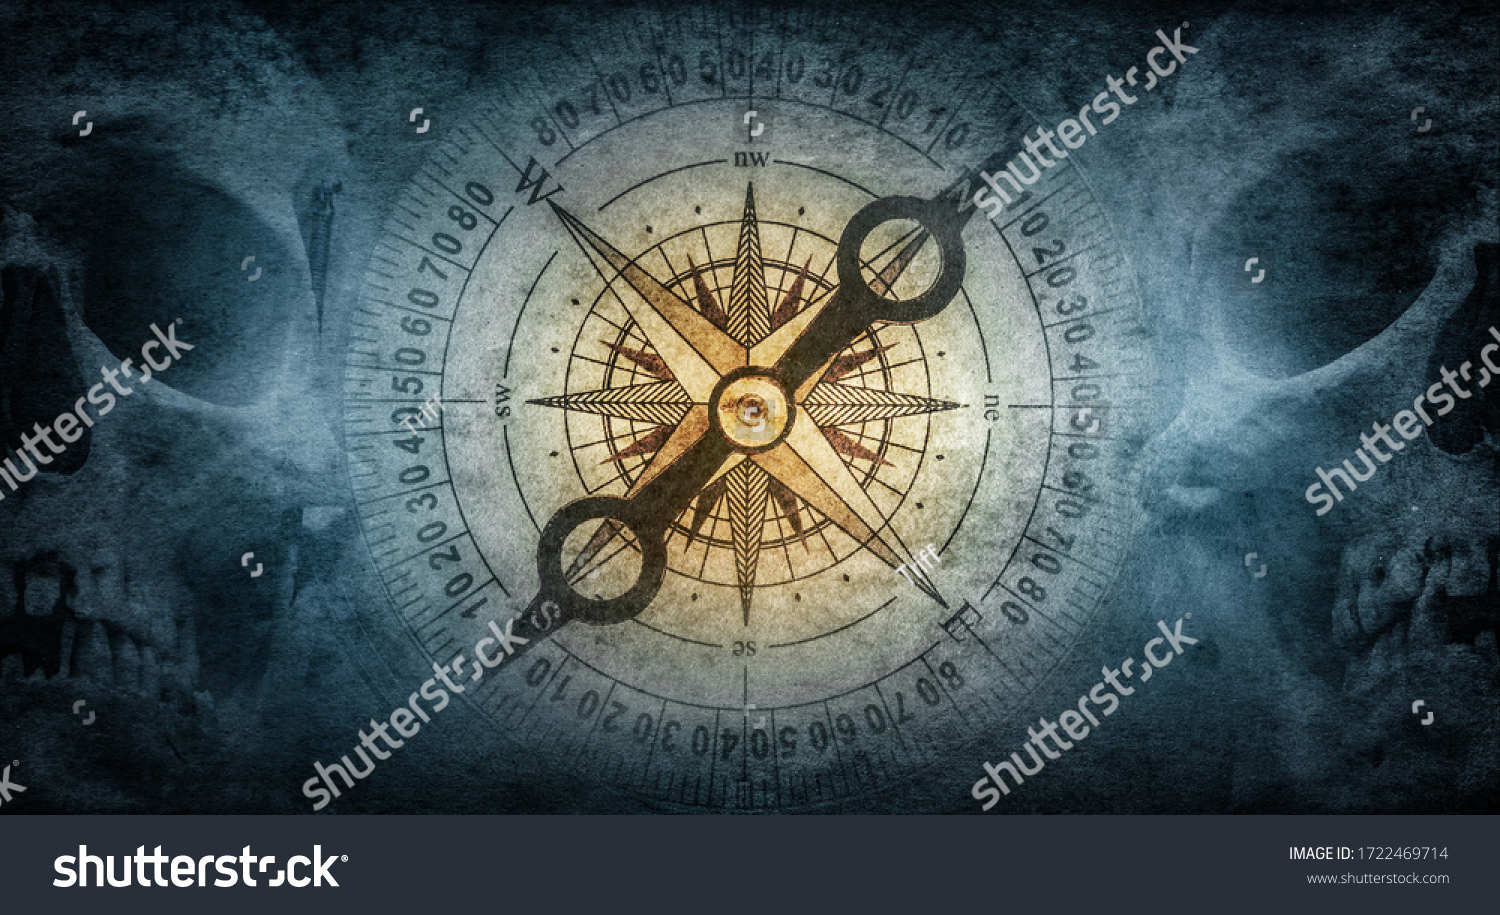 Skull of an old sailor pirate and vintage compass on a background of old paper. Symbol of travel, adventure, geographical discoveries, history, treasure hunt. Pirate and nautical grunge background. #1722469714